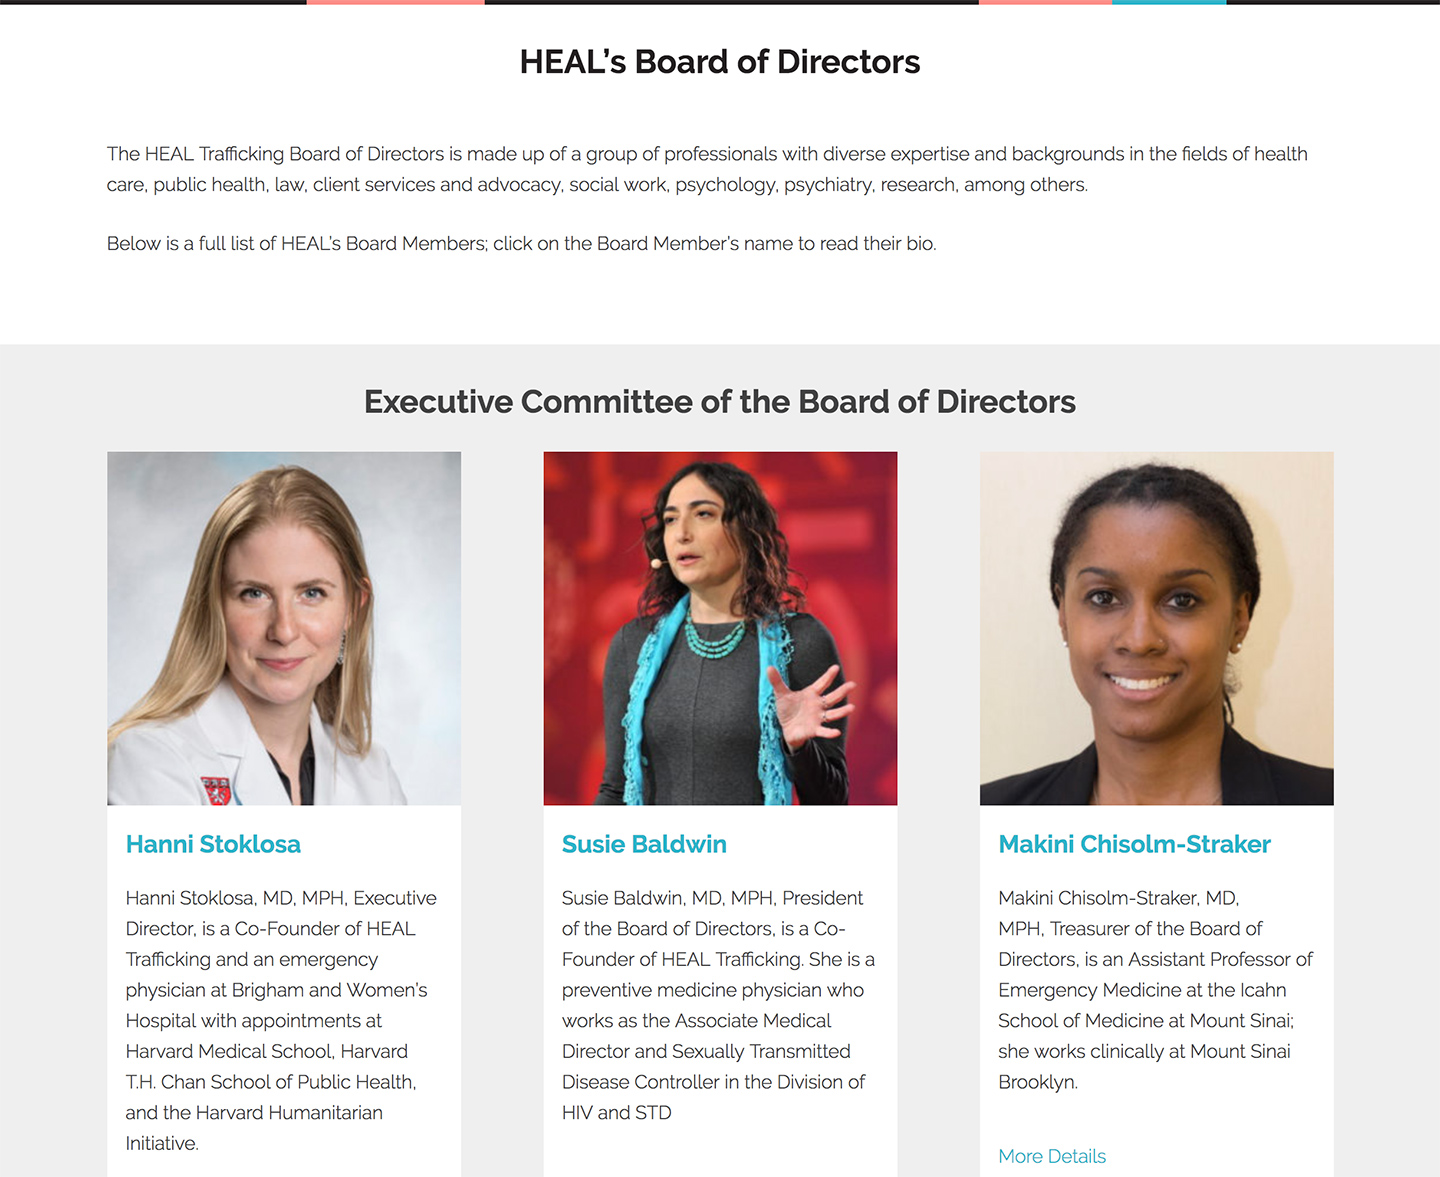 HEAL Trafficking: Easily edited board member listings